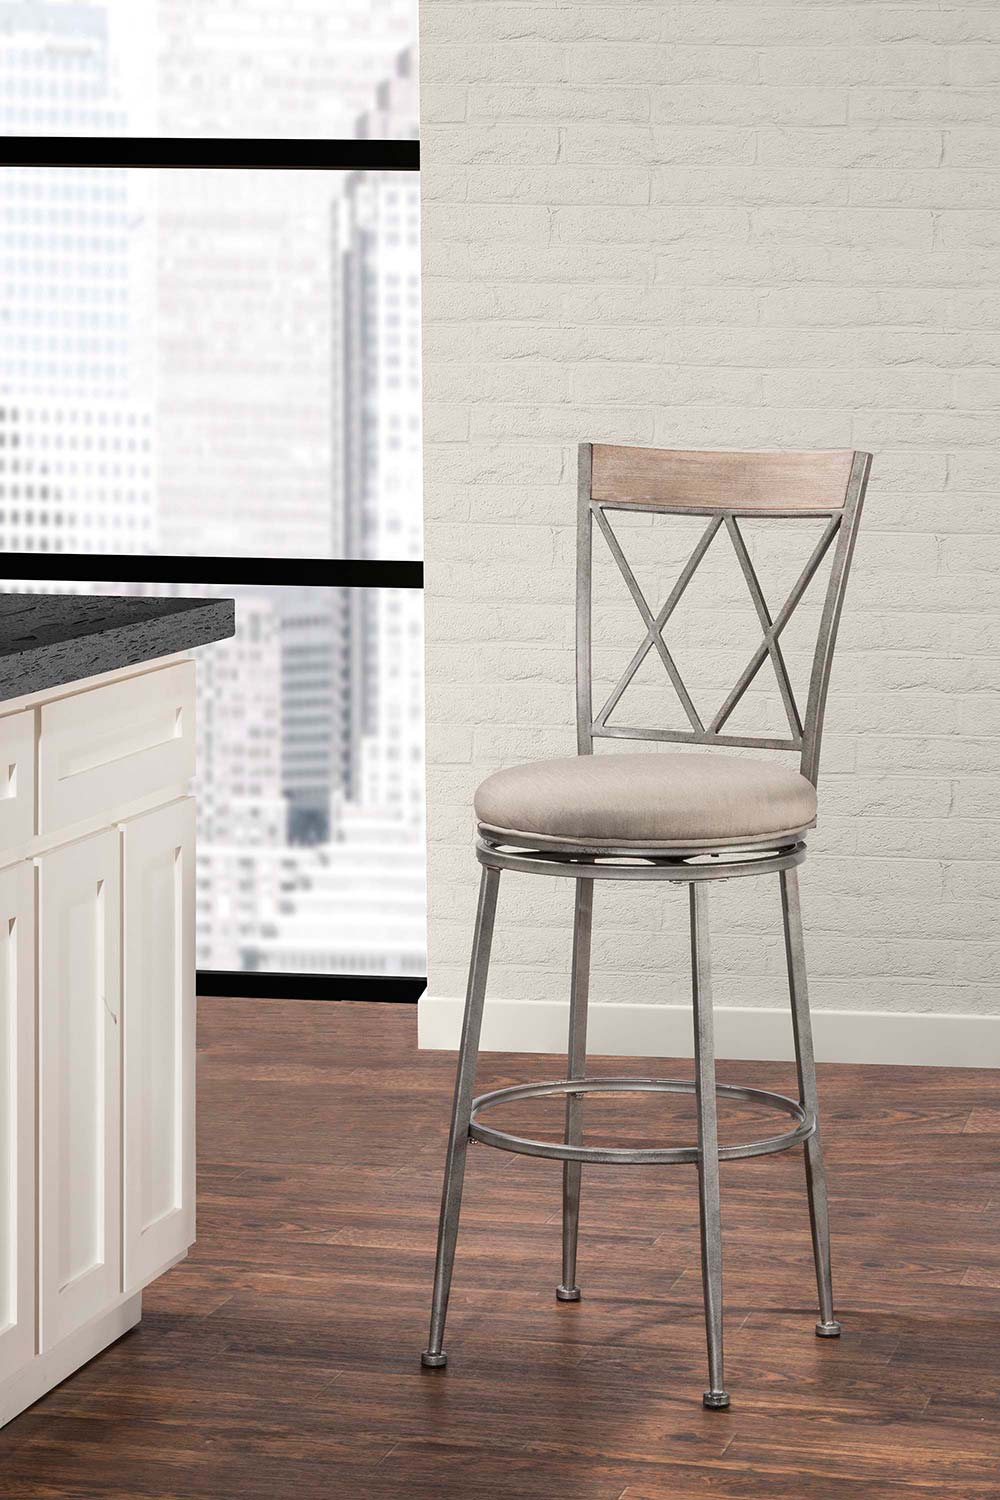 Hillsdale Stewart Indoor/Outdoor Swivel Bar Stool - Aged Pewter